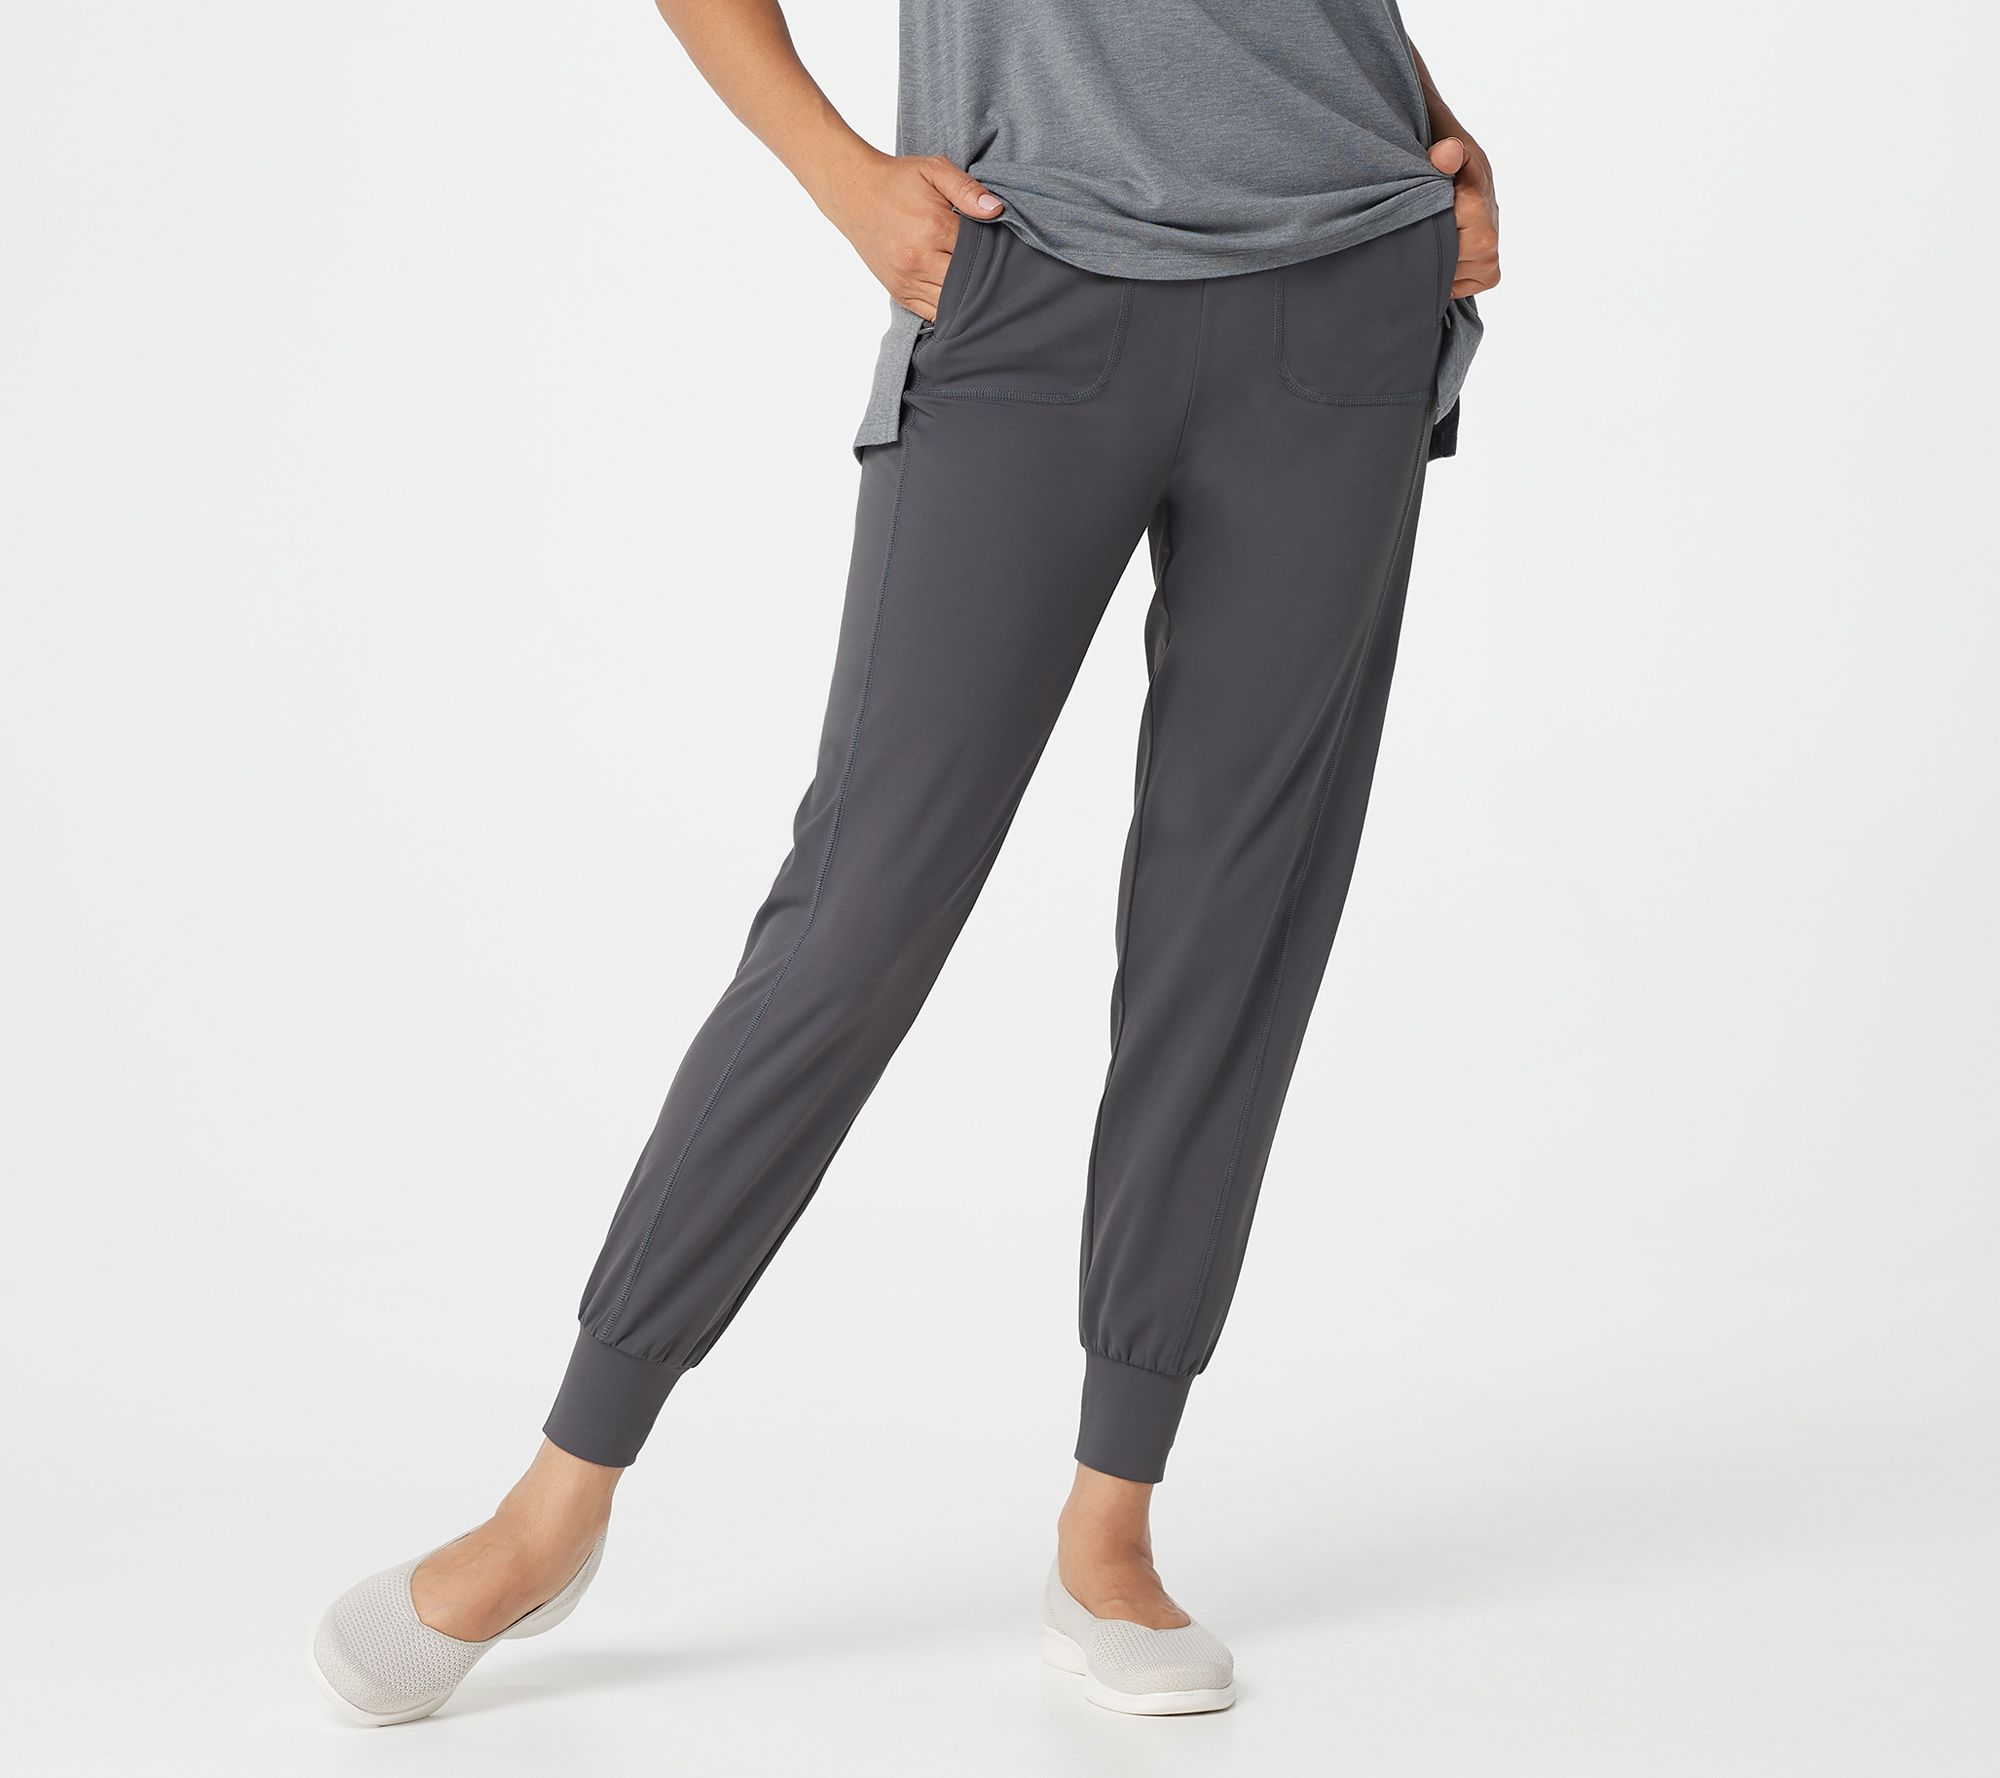 Girls Help Me On A Family Vacation Teen Sweatpants Stretch Jogger Pants Back Pocket Black